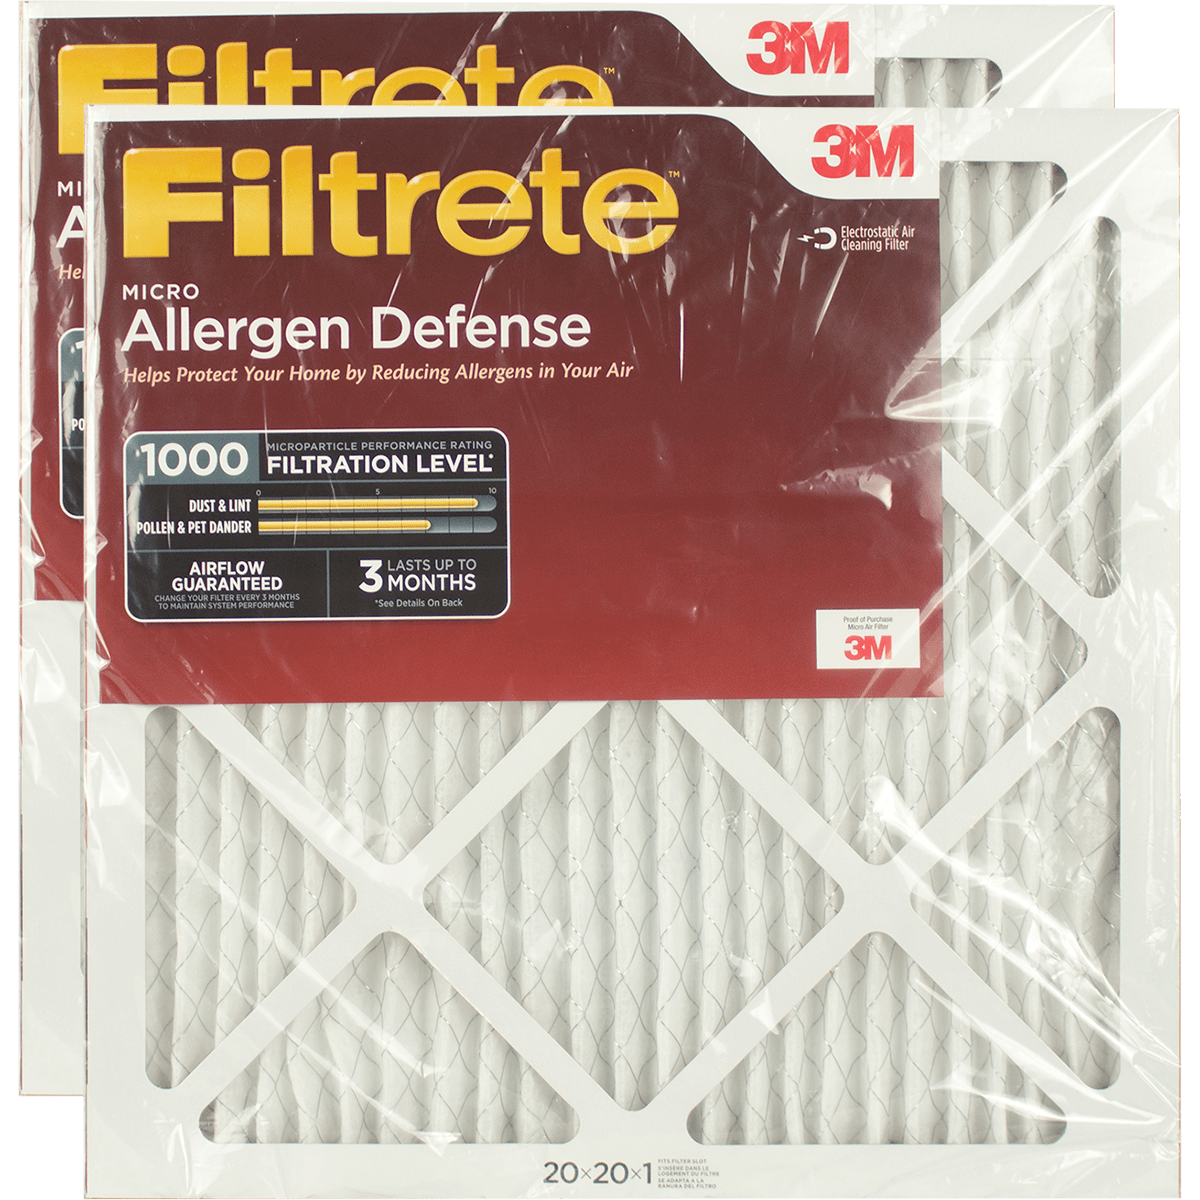 3M Filtrete 1-Inch Micro Allergen Defense MPR 1000 Air Filters - 2 Pack fi5409